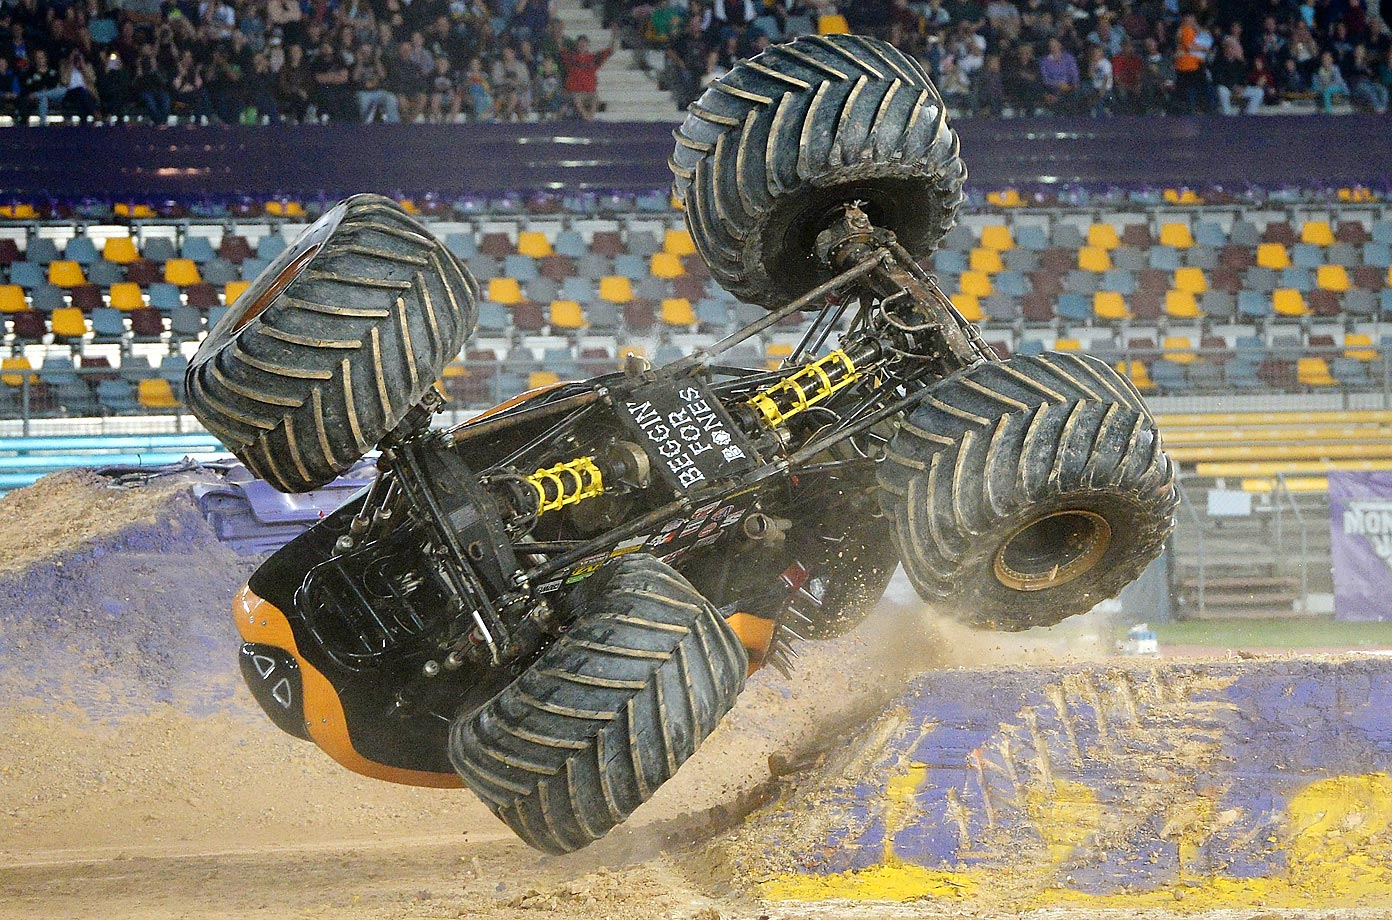 Colt Stephens driving Monster Mutt Rottweiler crashes during Monster Jam.